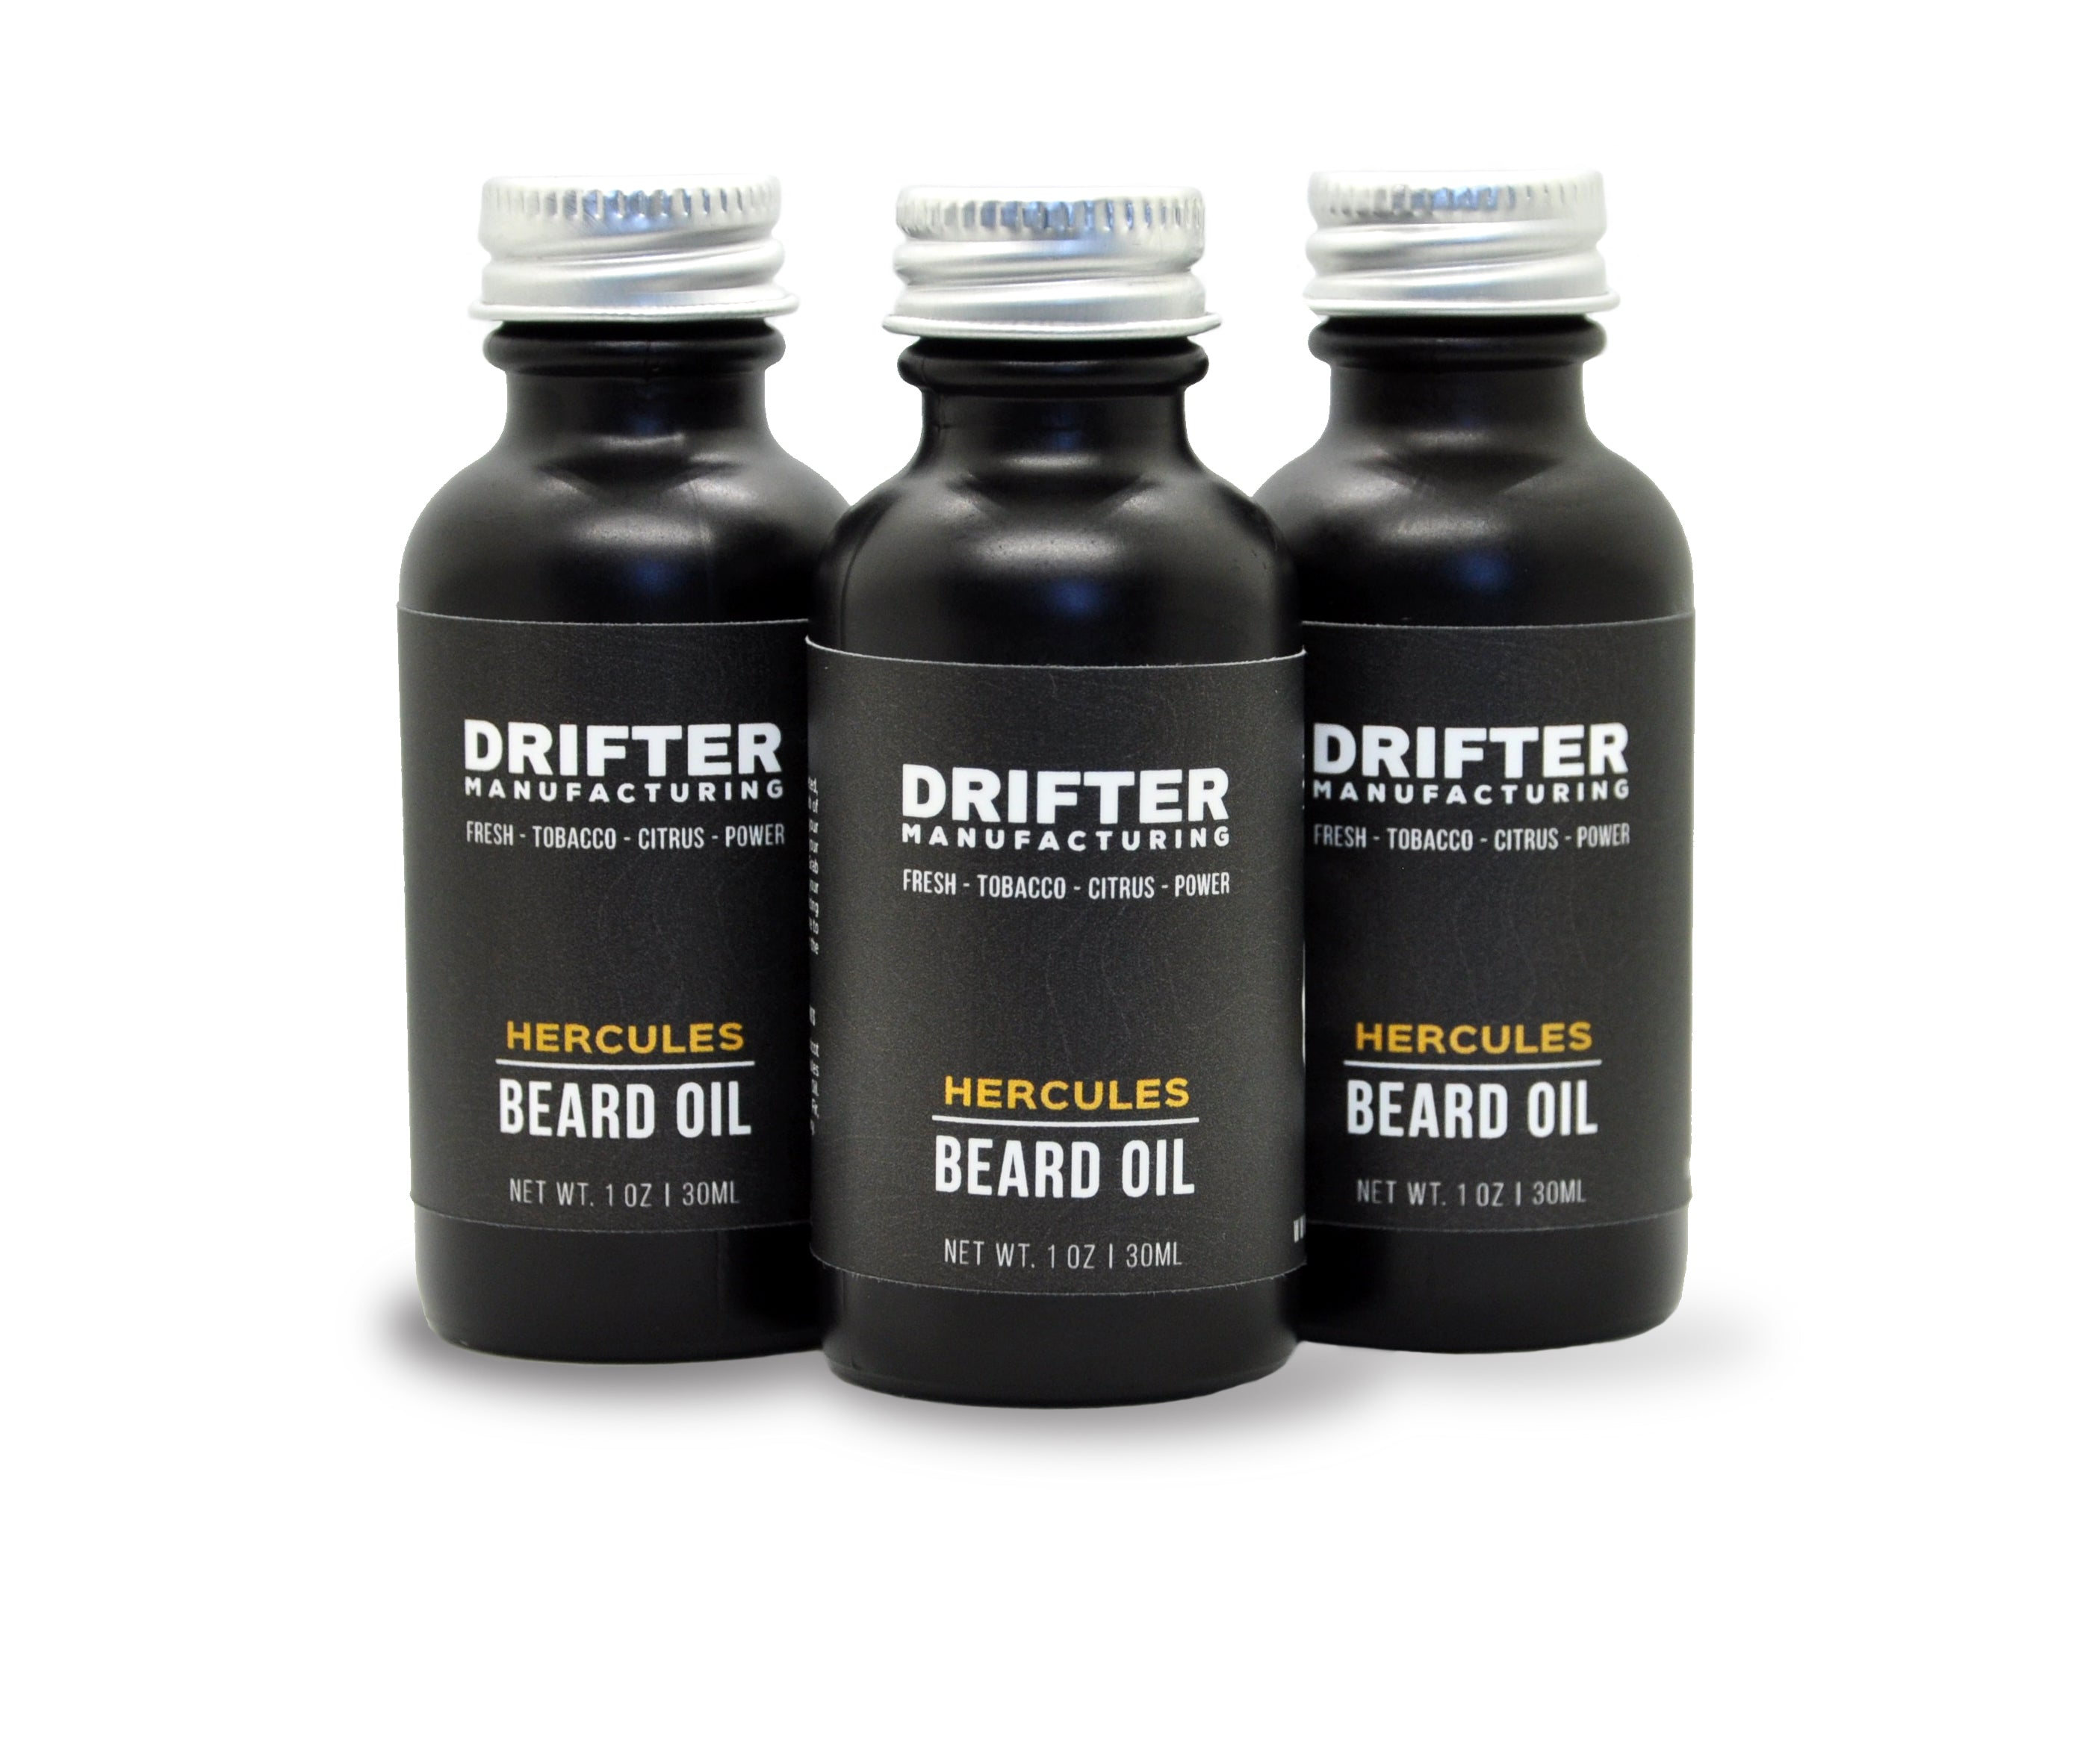 Hercules Beard Oil